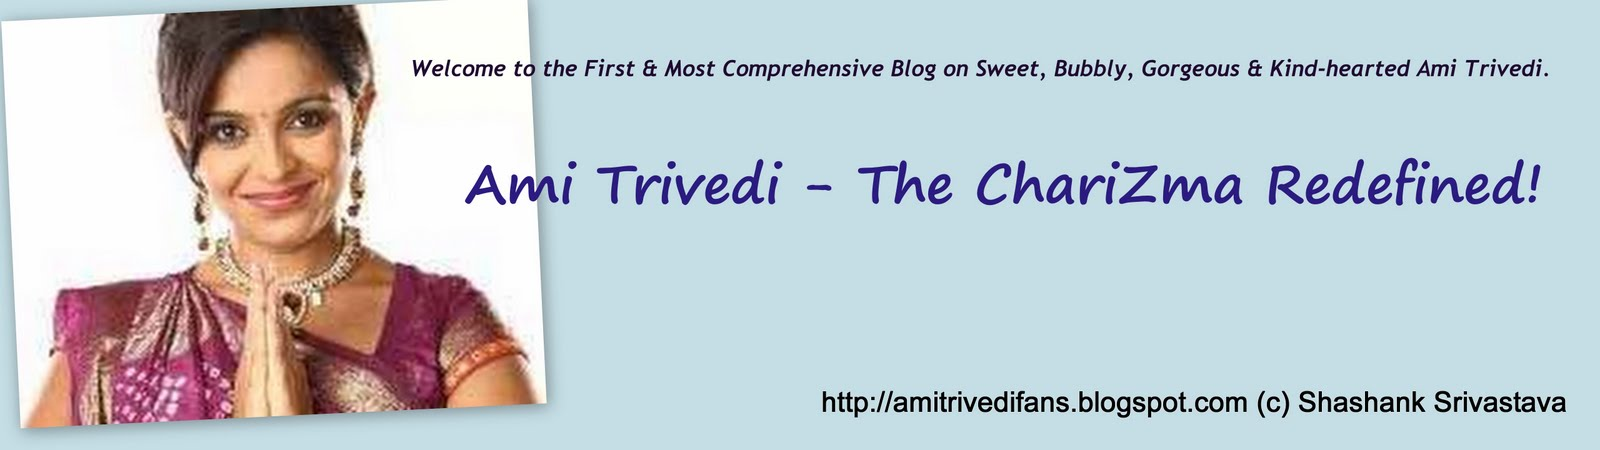 Ami Trivedi - The ChariZma Redefined!!